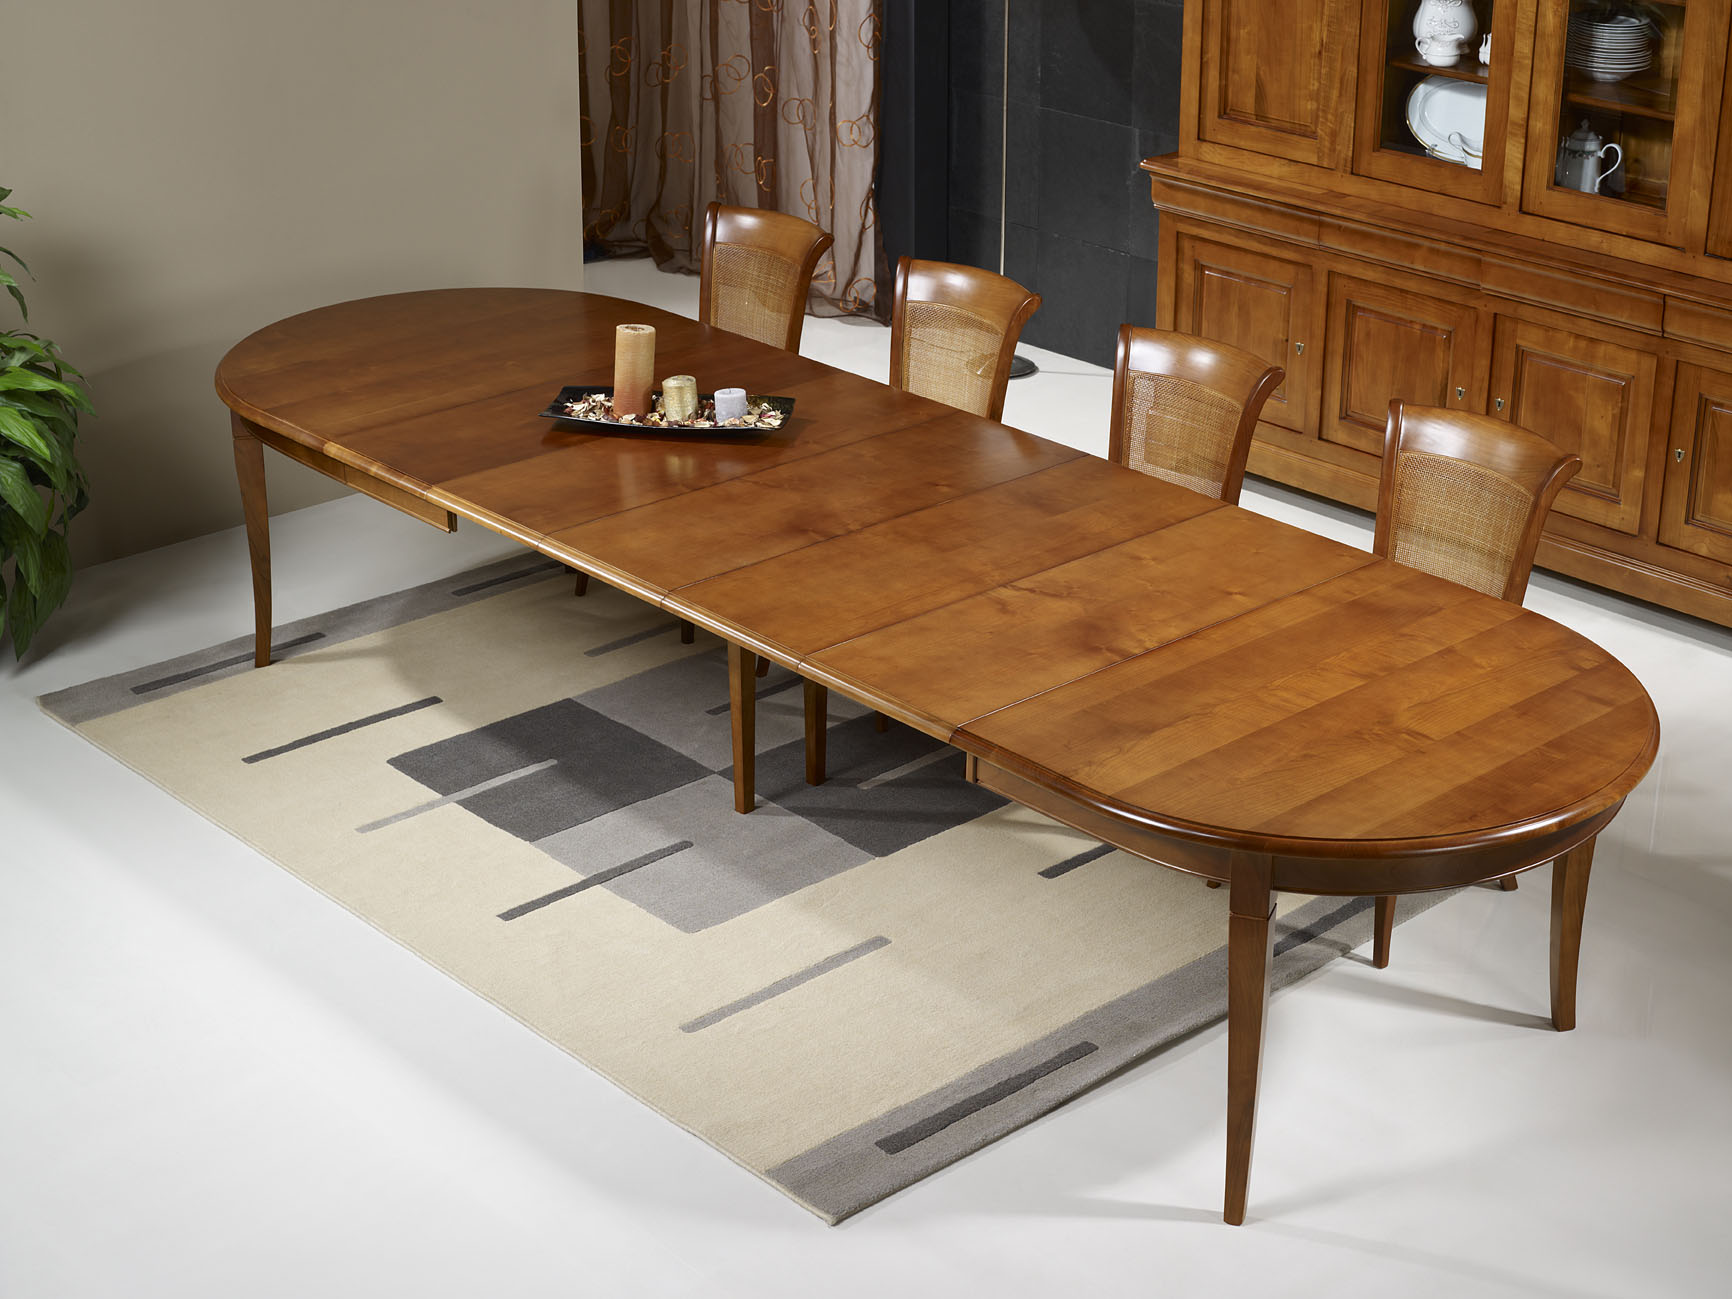 Table ovale 180x120 en merisier massif de style louis for Table ovale allonge